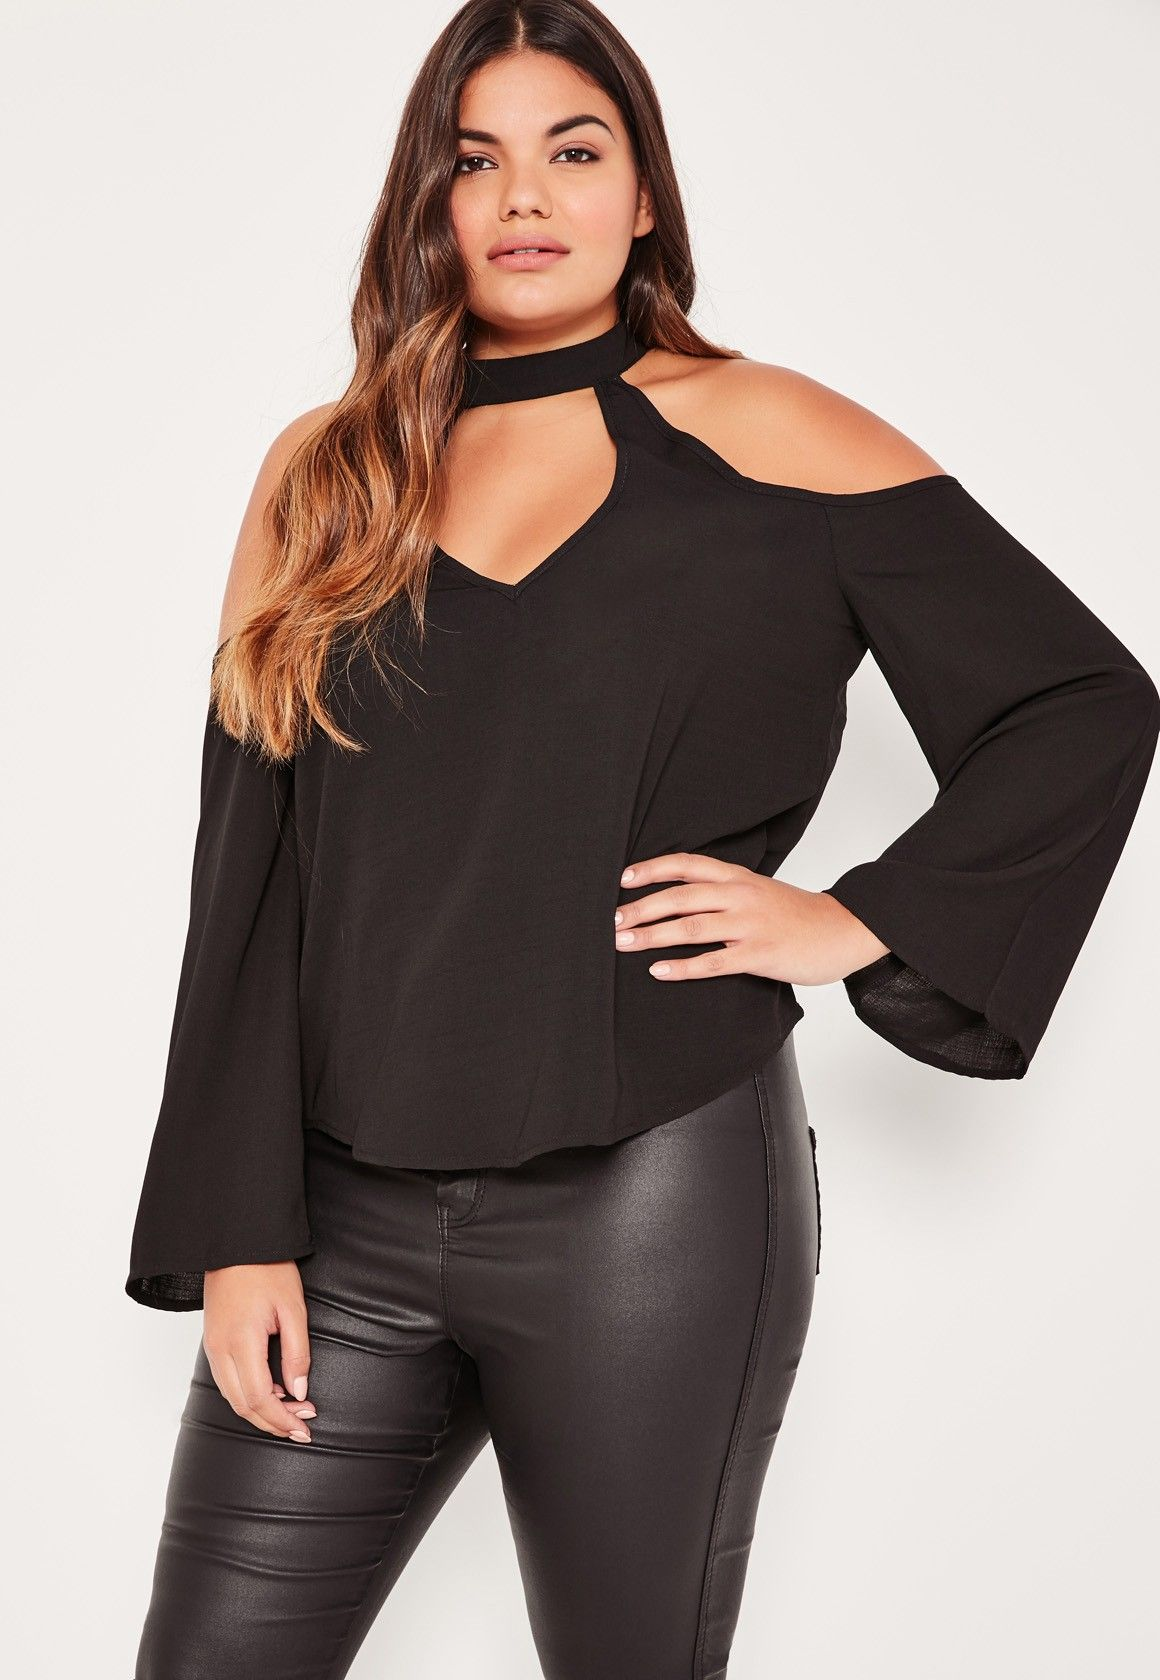 1cde19b4fb7fbf Black Choker Neck Cold Shoulder Blouse | plus size | Neck choker ...